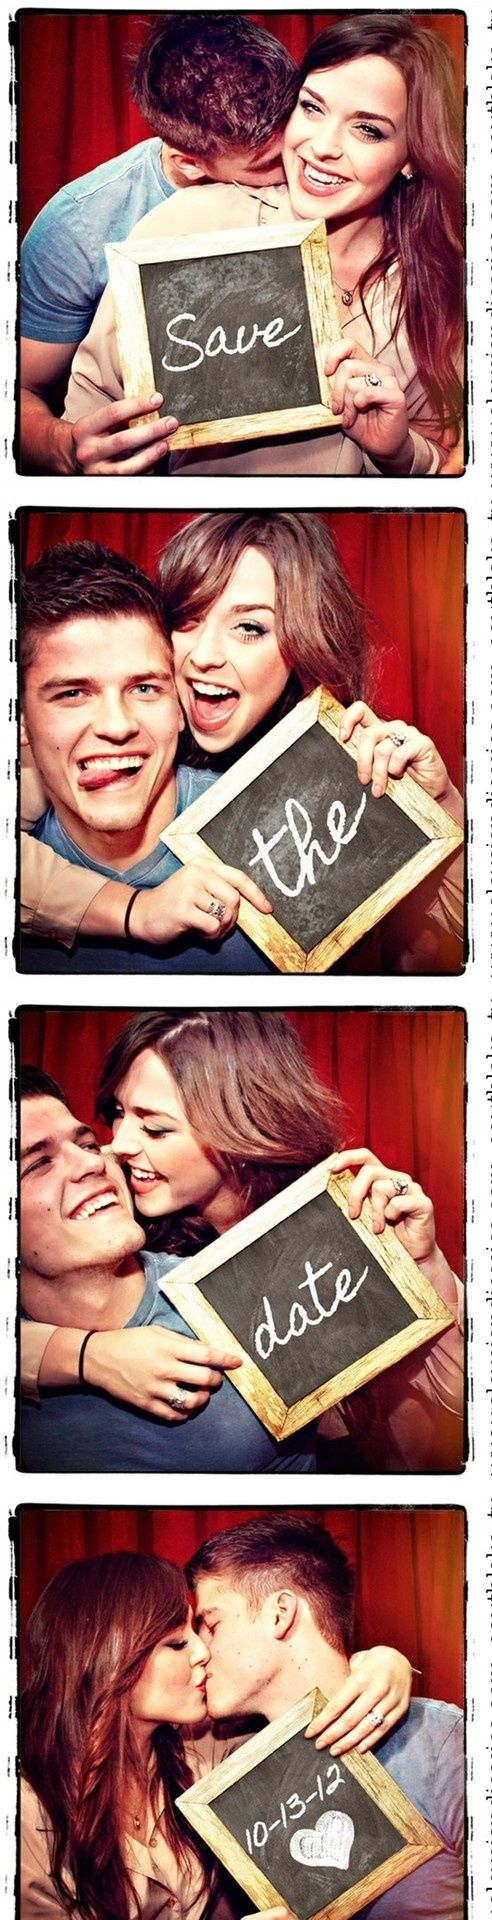 save the date photobooth pics